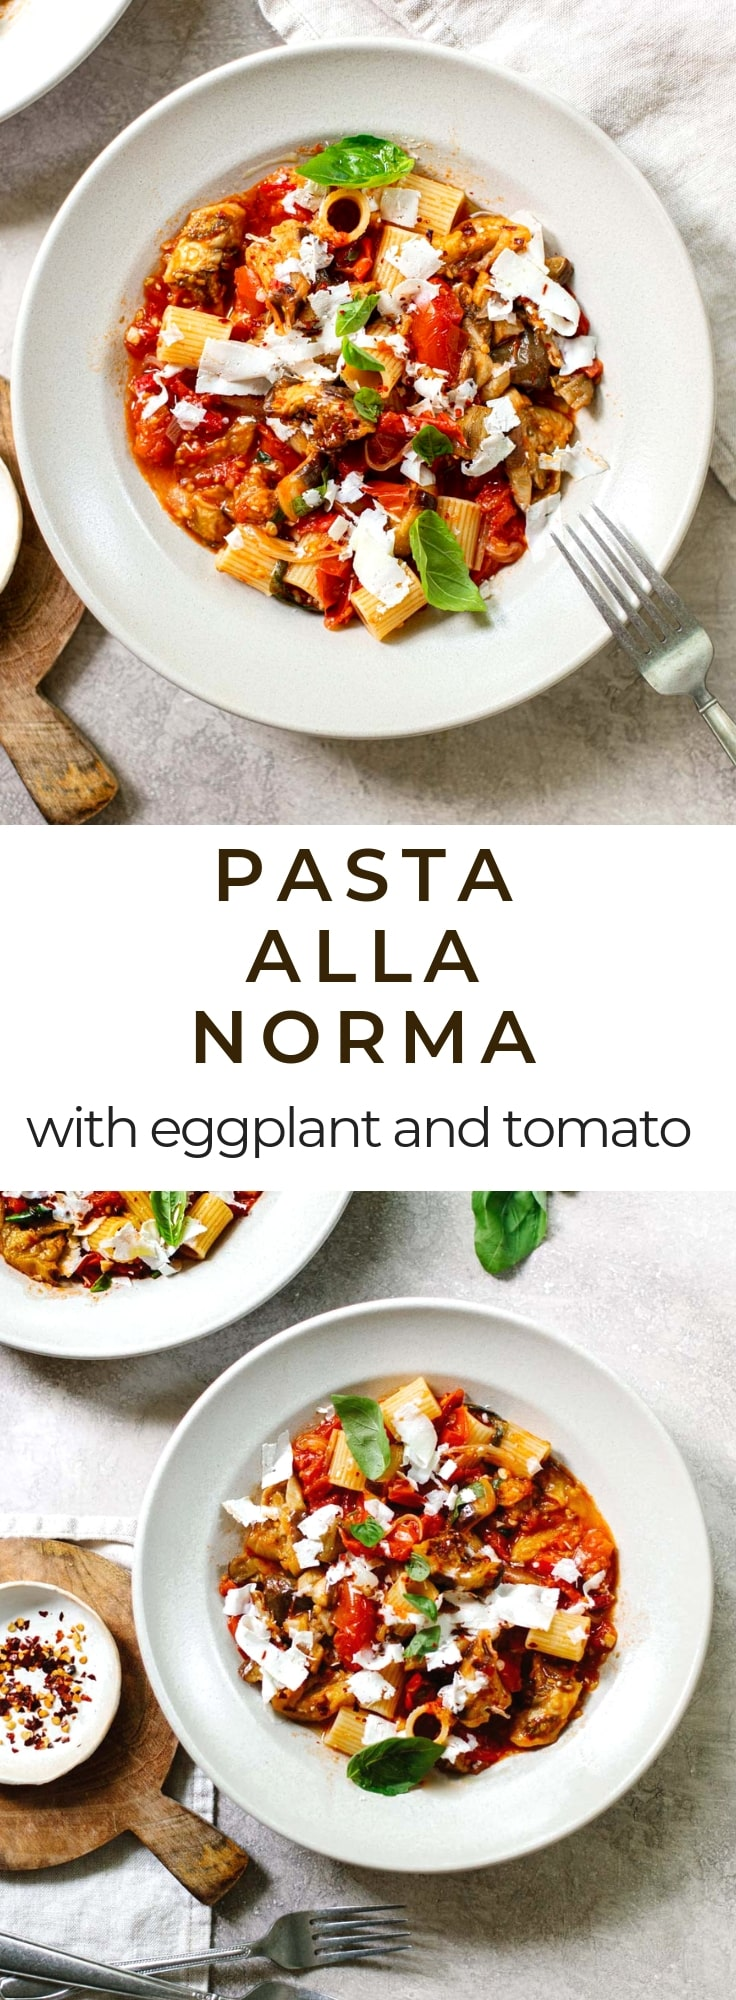 Pasta all Norma: An easy vegetarian pasta sauce you'll fall in love with. Roasted eggplant, fresh tomato sauce and basil topped with ricotta salata cheese. #Italian #recipe #healthy